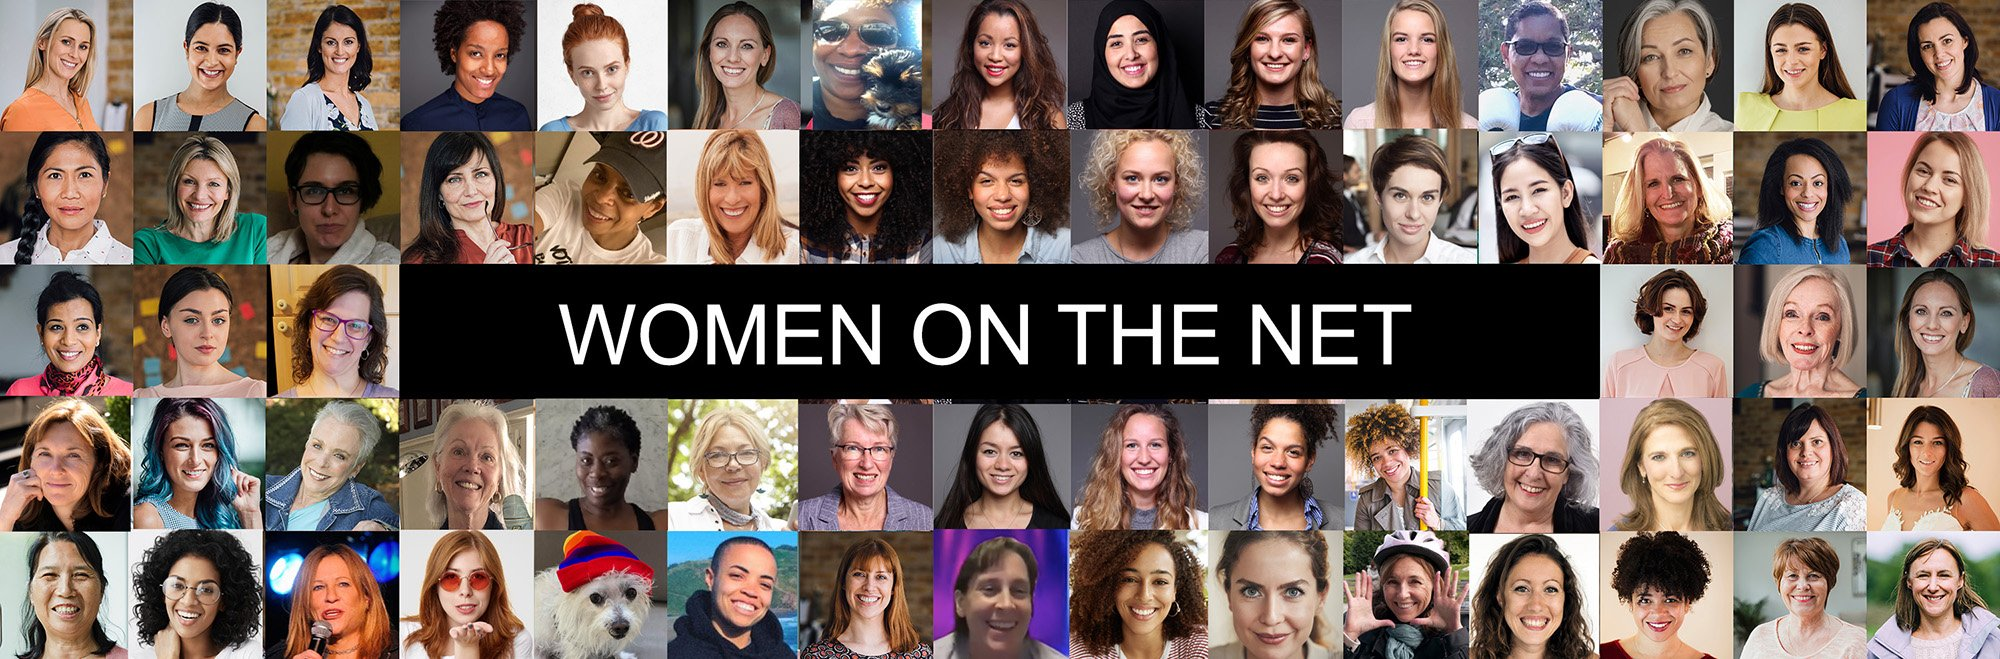 Header Image With Many Women